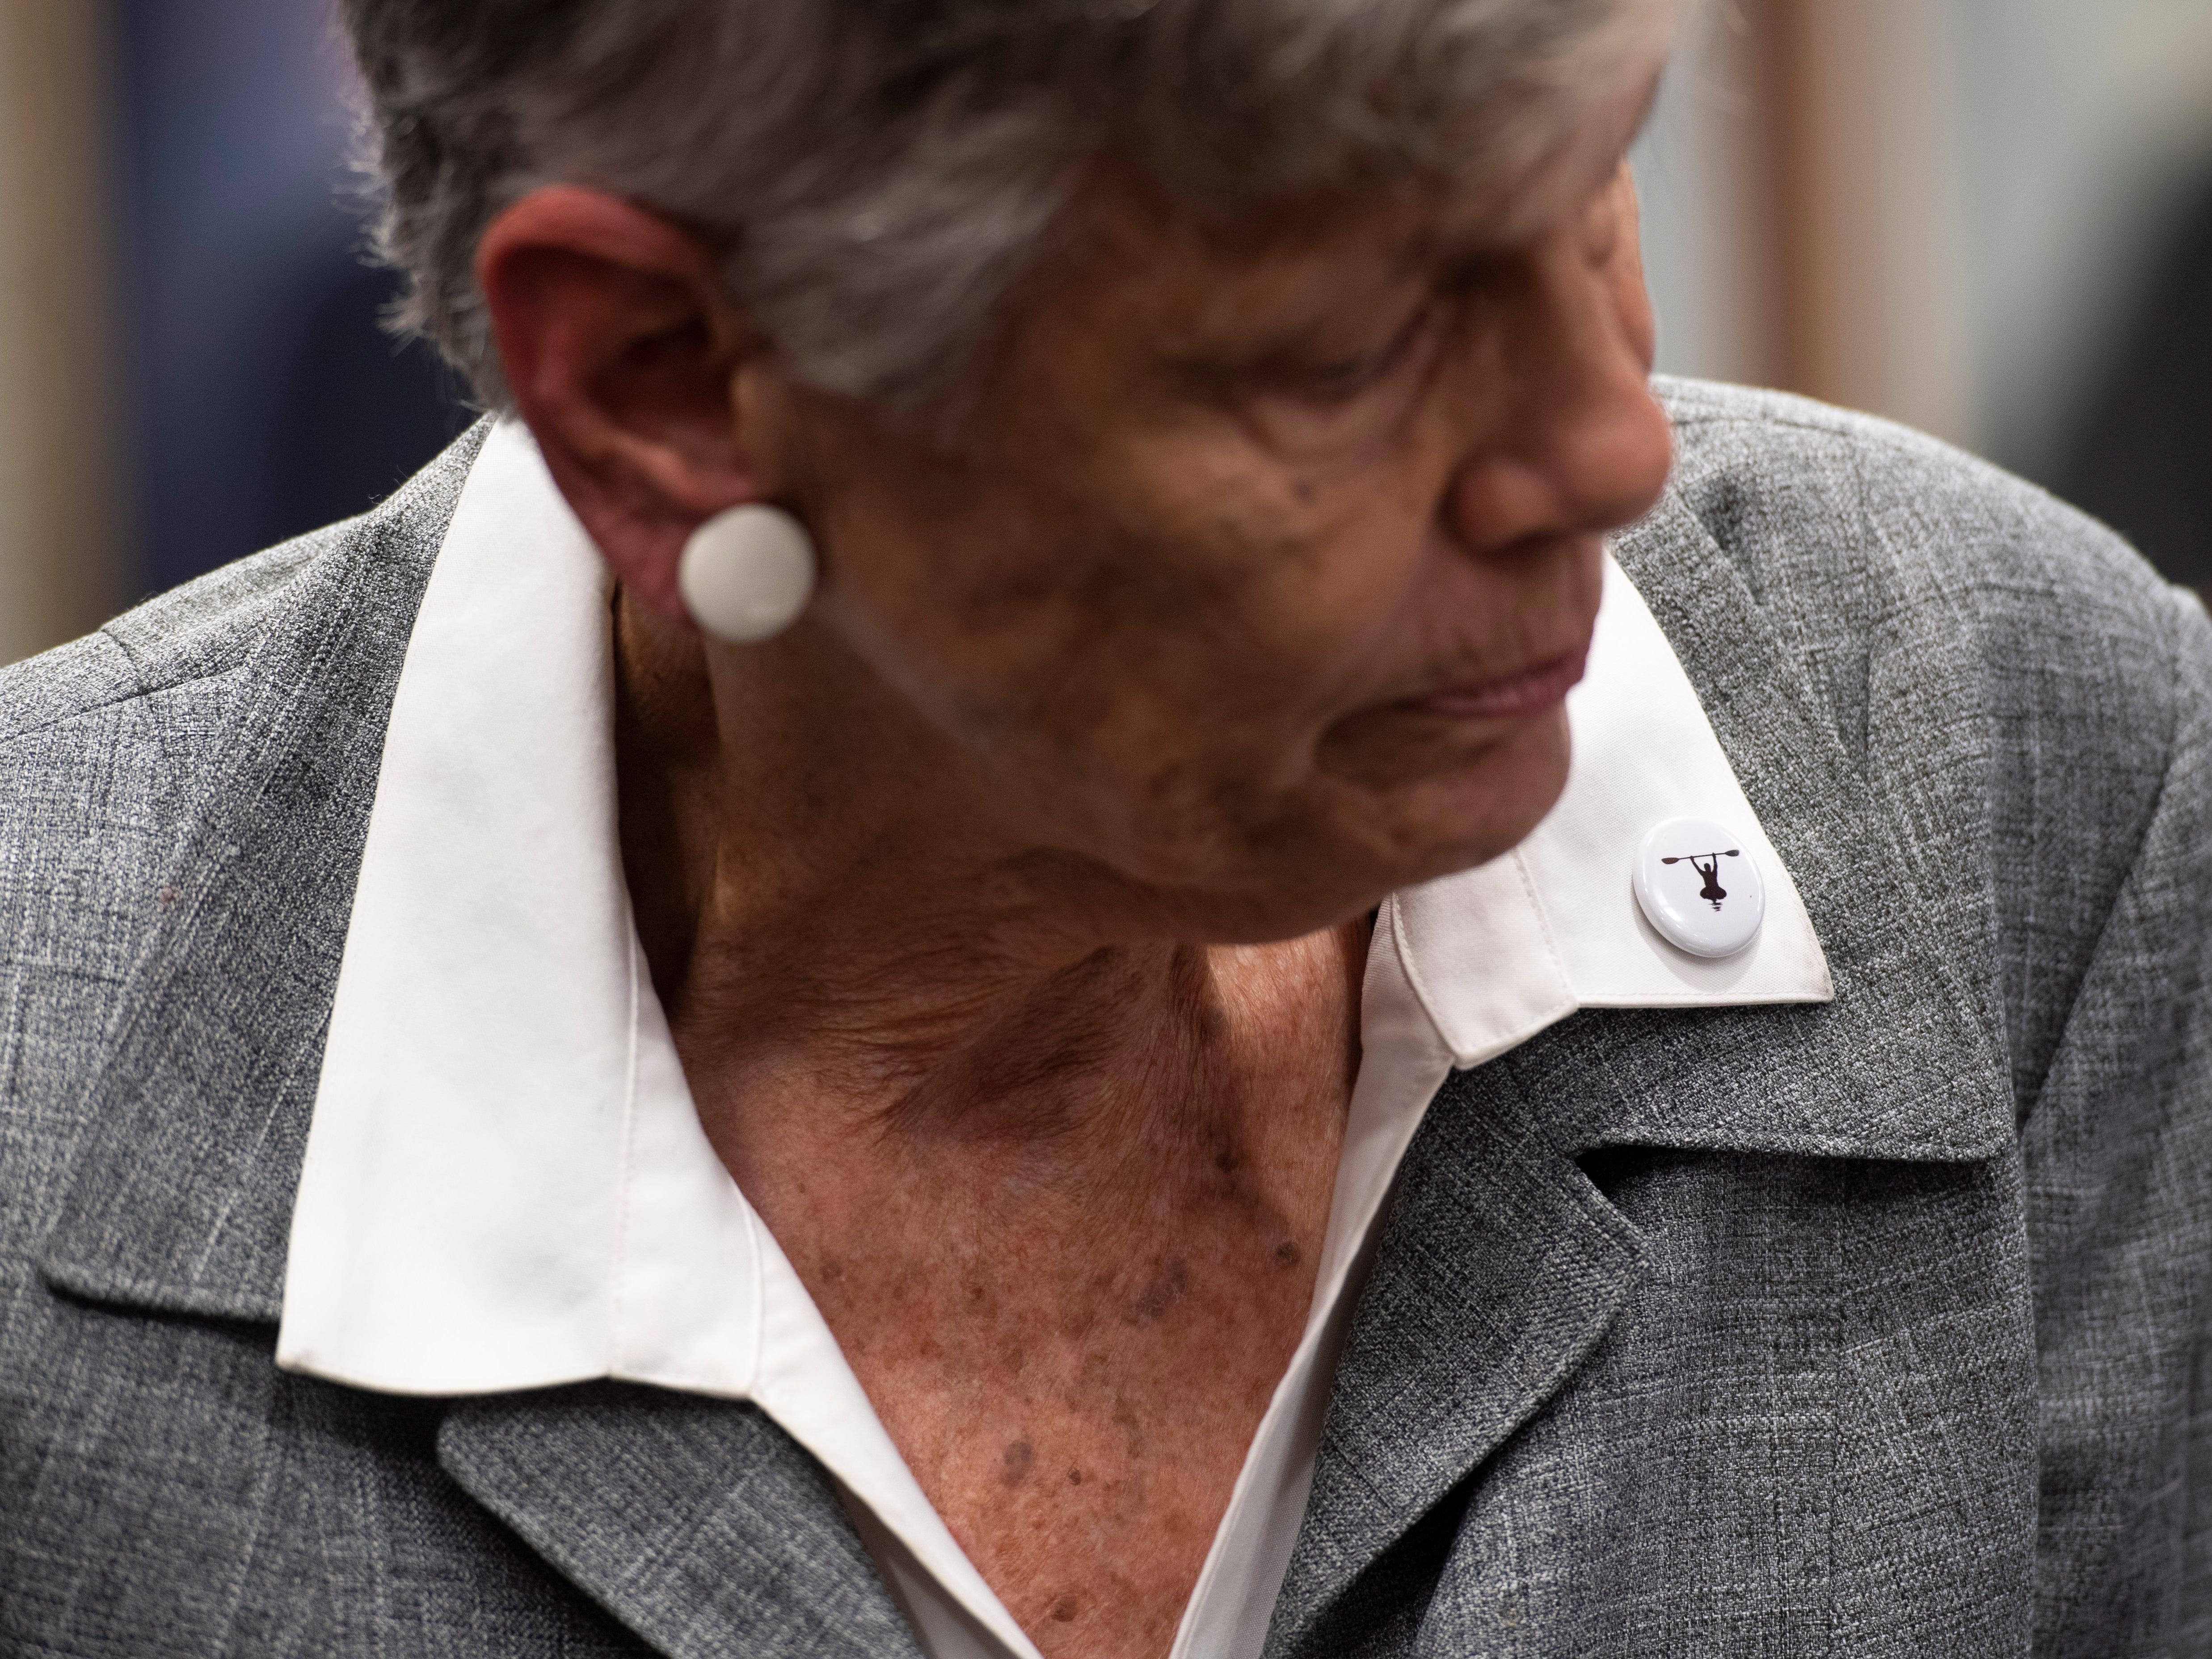 Buttons depicting Maggy Hurchalla on a kayak were distributed by supporters ahead of a hearing where Hurchalla appealed a Martin County jury's decision that she owes $4.4 million to rock quarry Lake Point for interfering in their contract with the county and the South Florida Water Management District on Tuesday, March 12, 2019, at the Fourth District Court of Appeal in West Palm Beach. As part of the payment Hurchalla was ordered to pay to Lake Point, the Martin County Sheriff's Office seized two kayaks and a 2004 Toyota from Hurchalla in July.